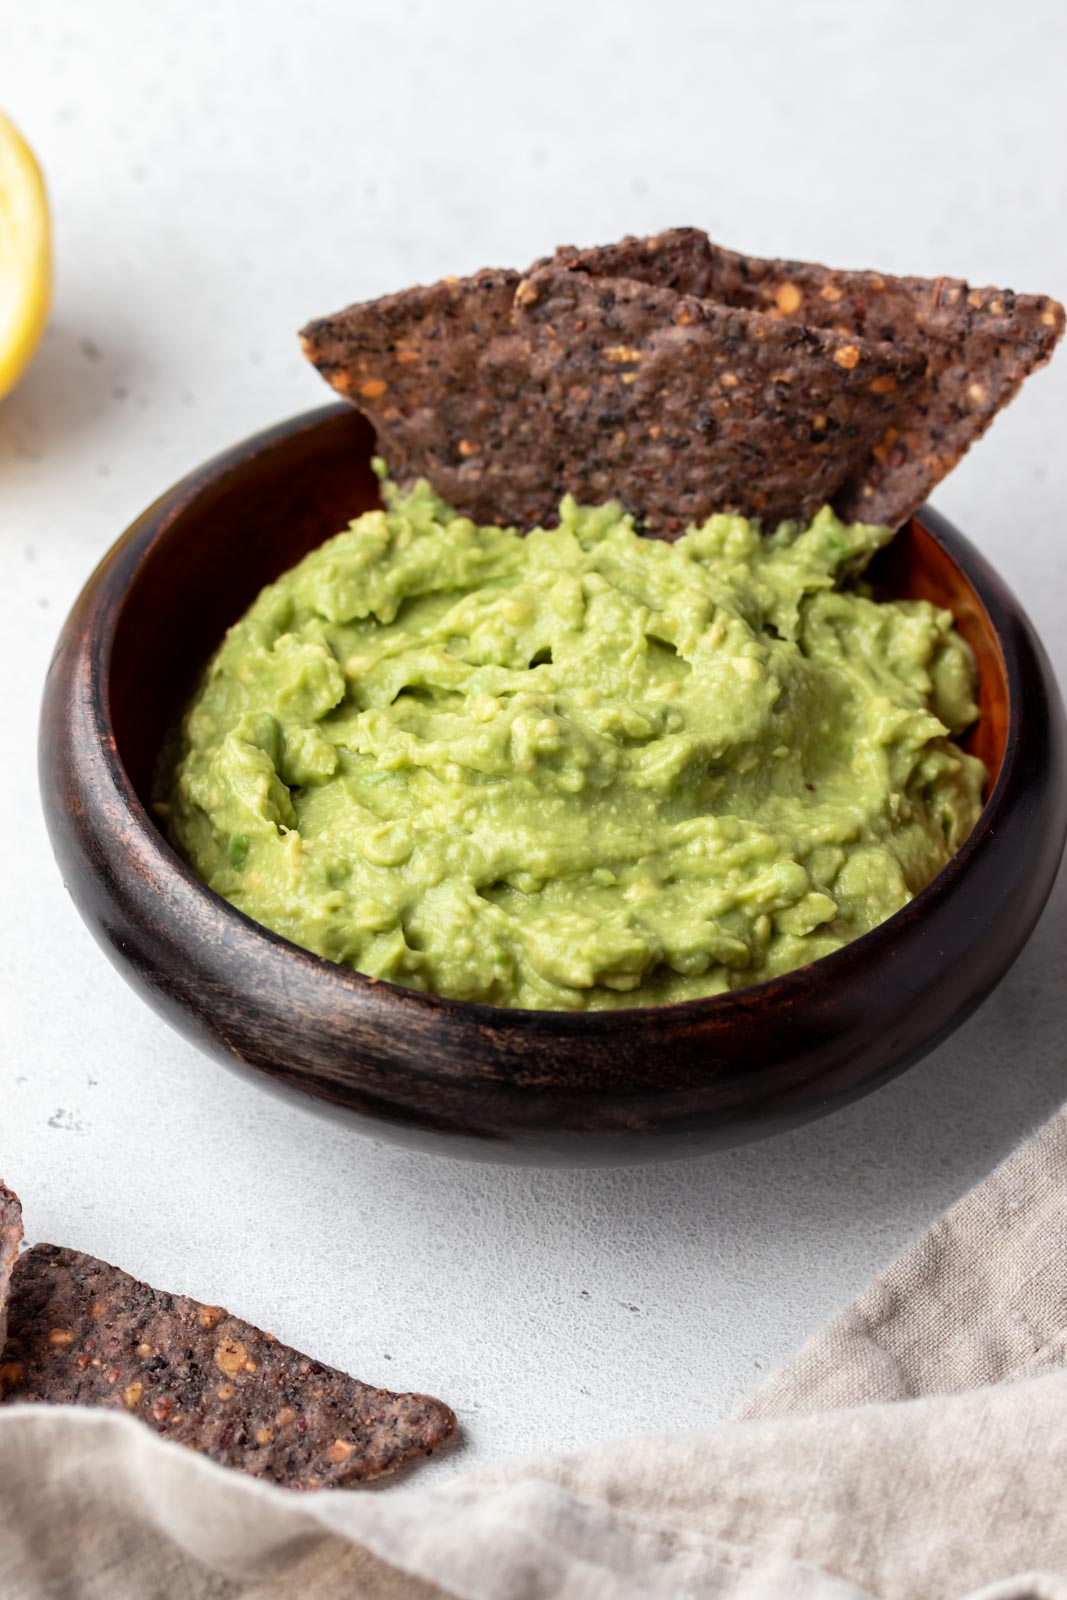 chips sitting in a bowl of guacamole